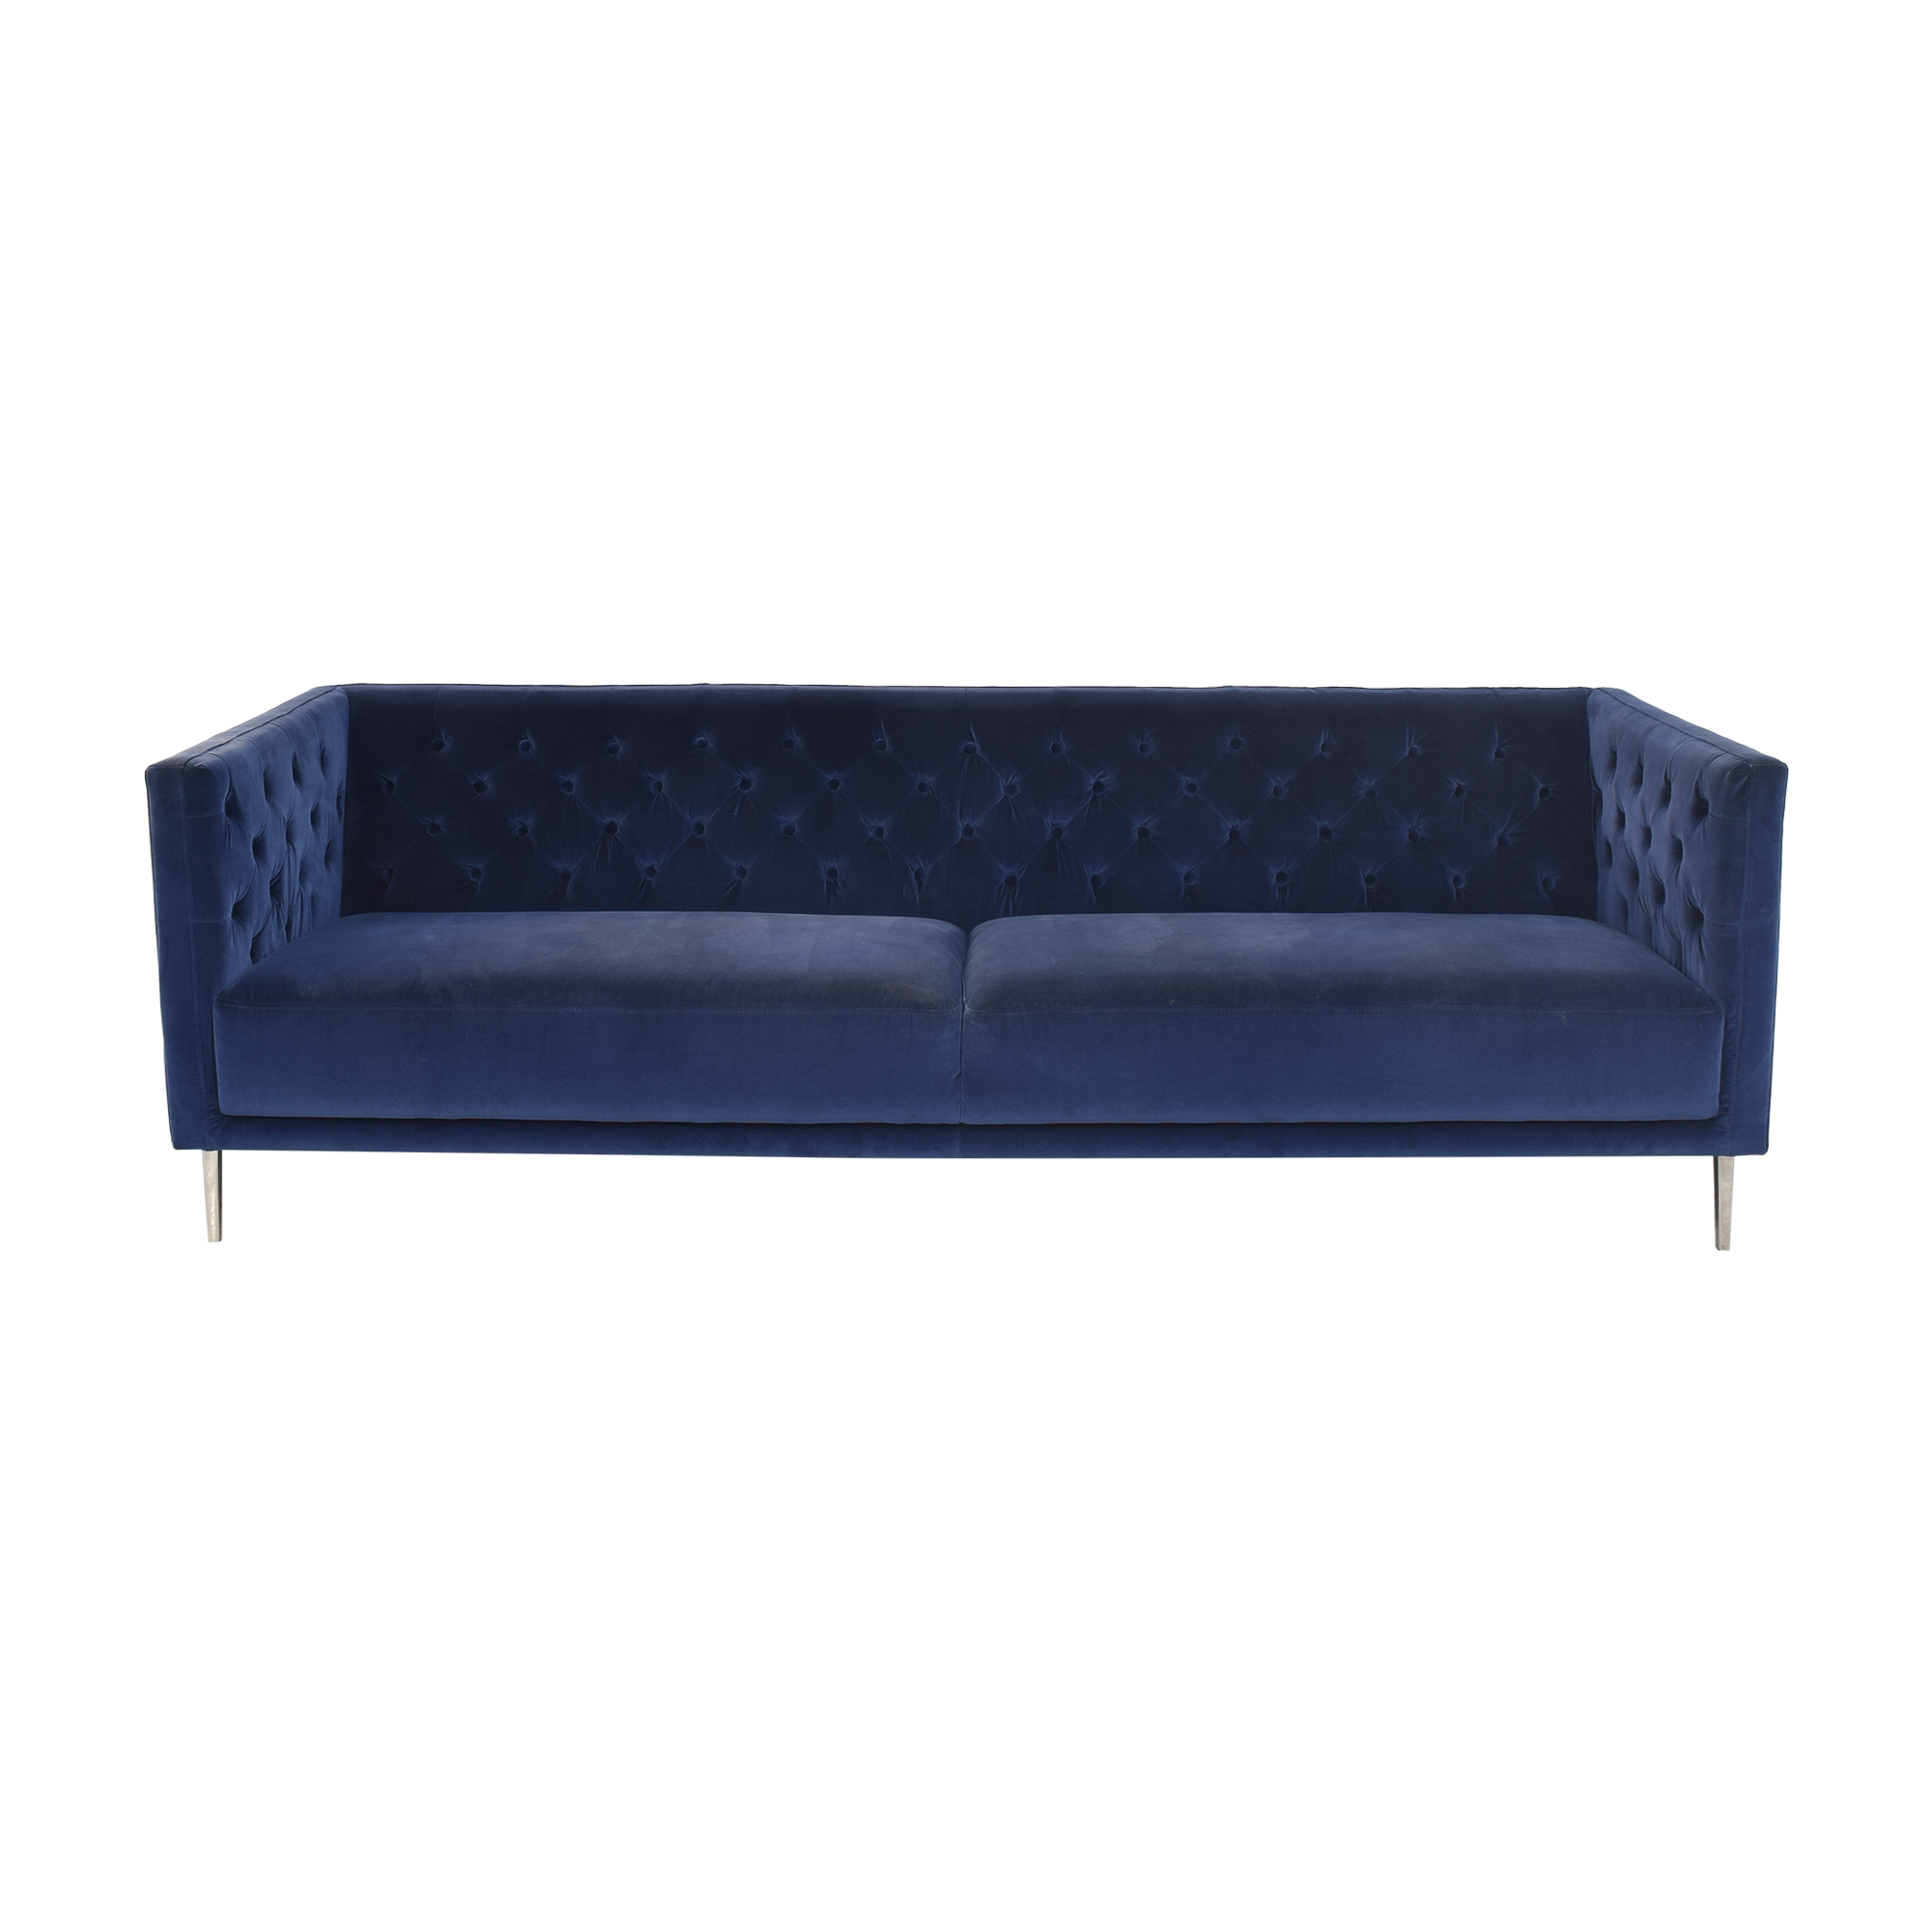 CB2 CB2 Savile Tufted Sofa blue